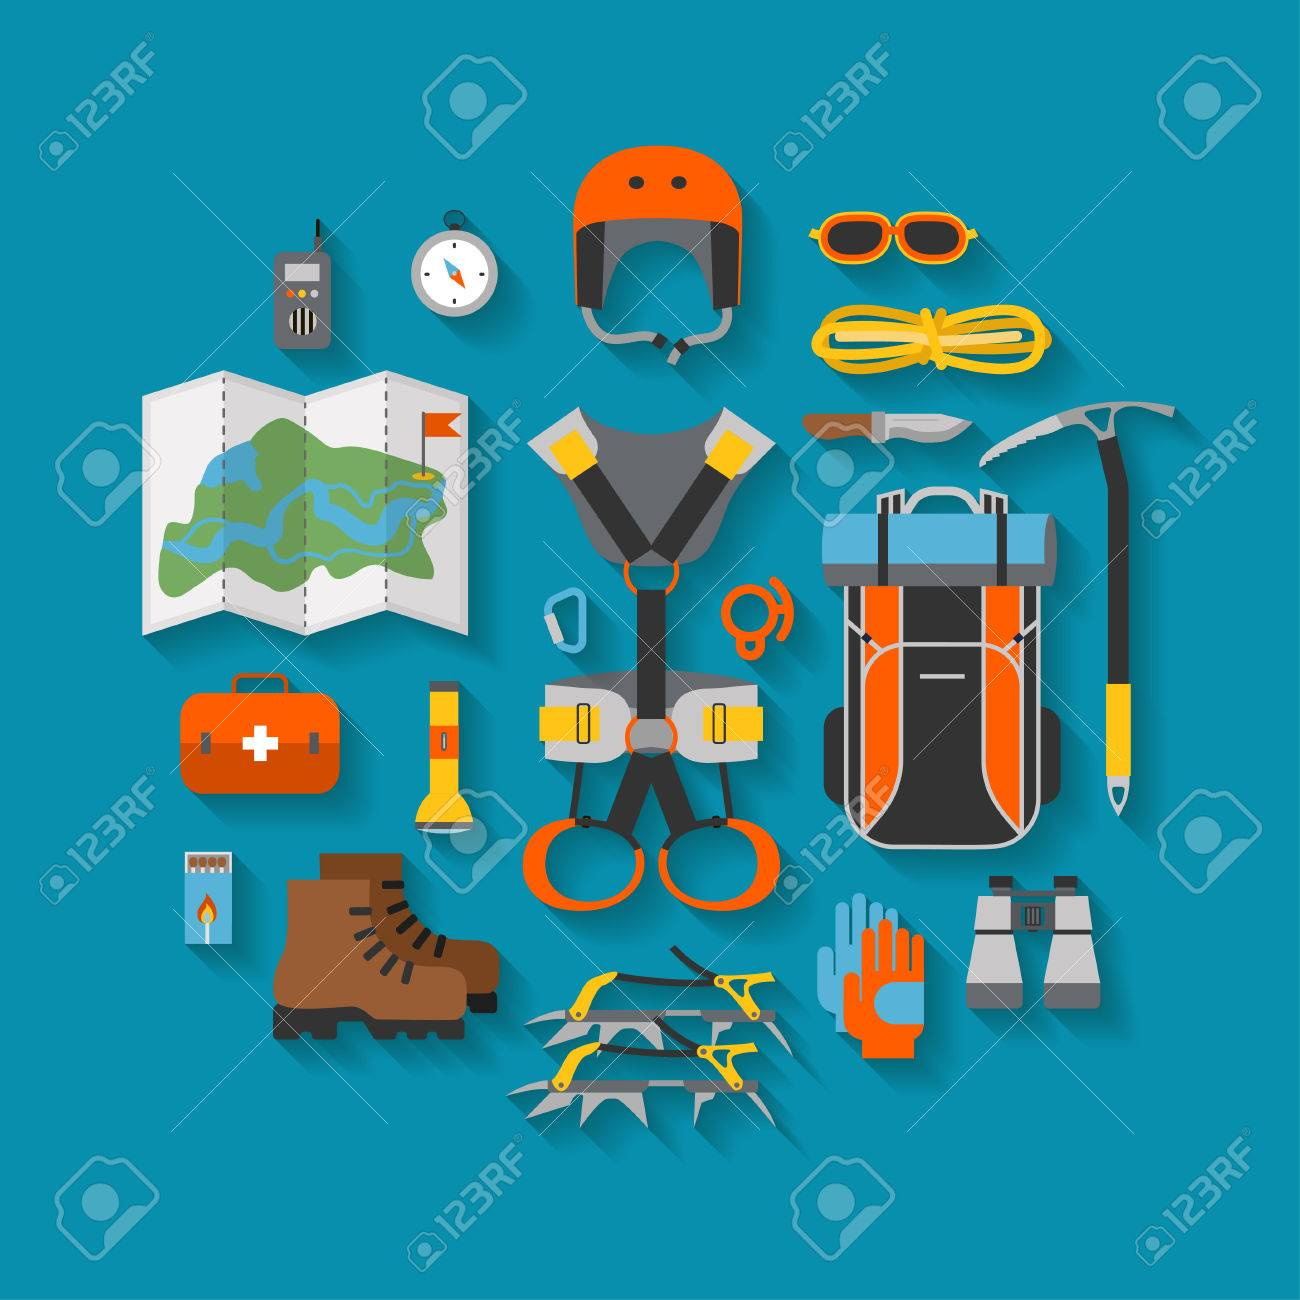 Flat design of modern of climbing and equipment for hiking with shadow. Outfit for mountaineering and items for traveling and recreation. For web sites, applications and printing. Vector illustration Stock Illustration - 83223151